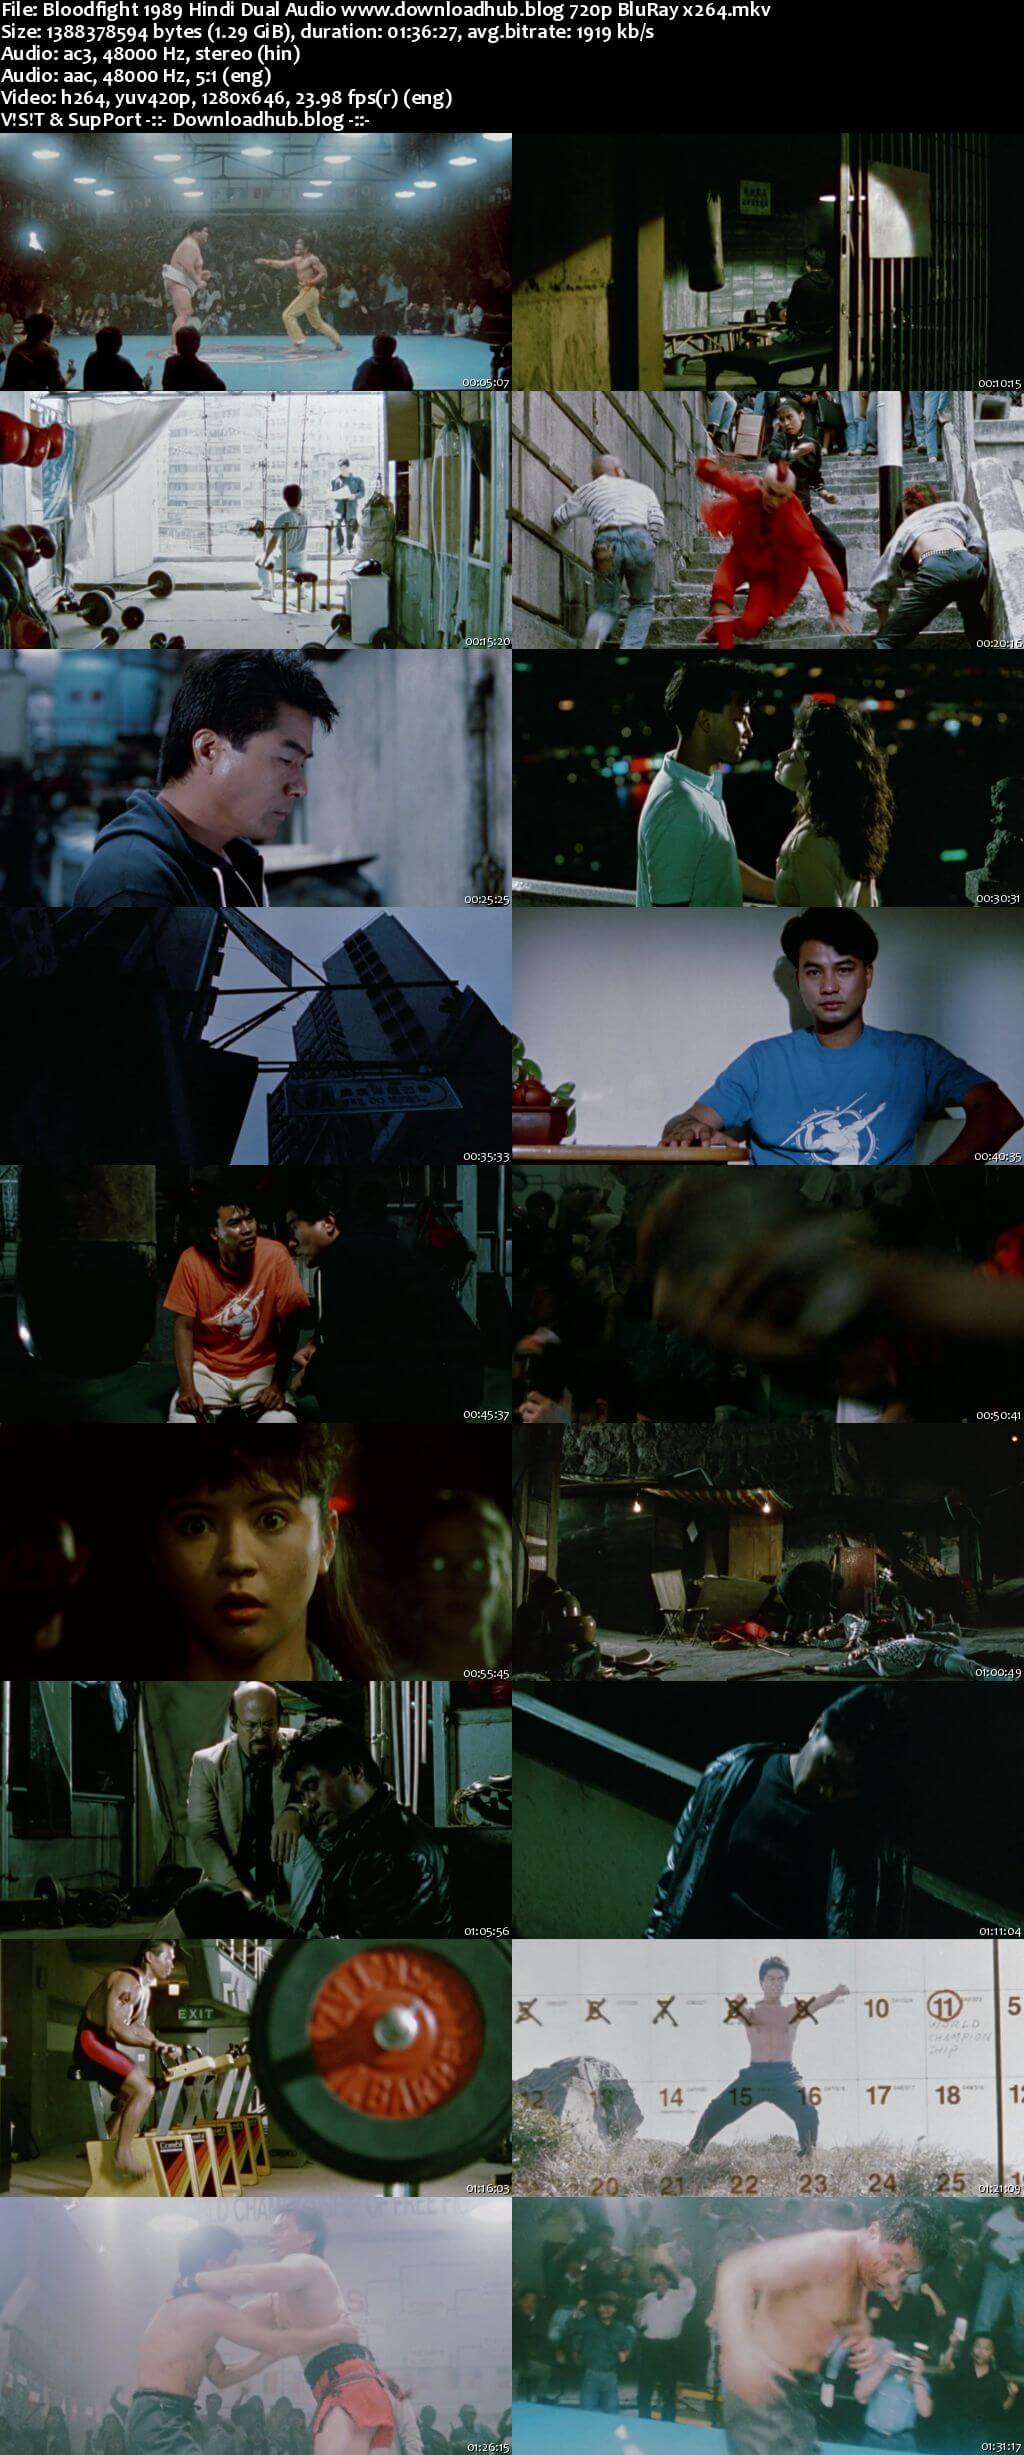 Bloodfight 1989 Hindi Dual Audio 720p BluRay x264